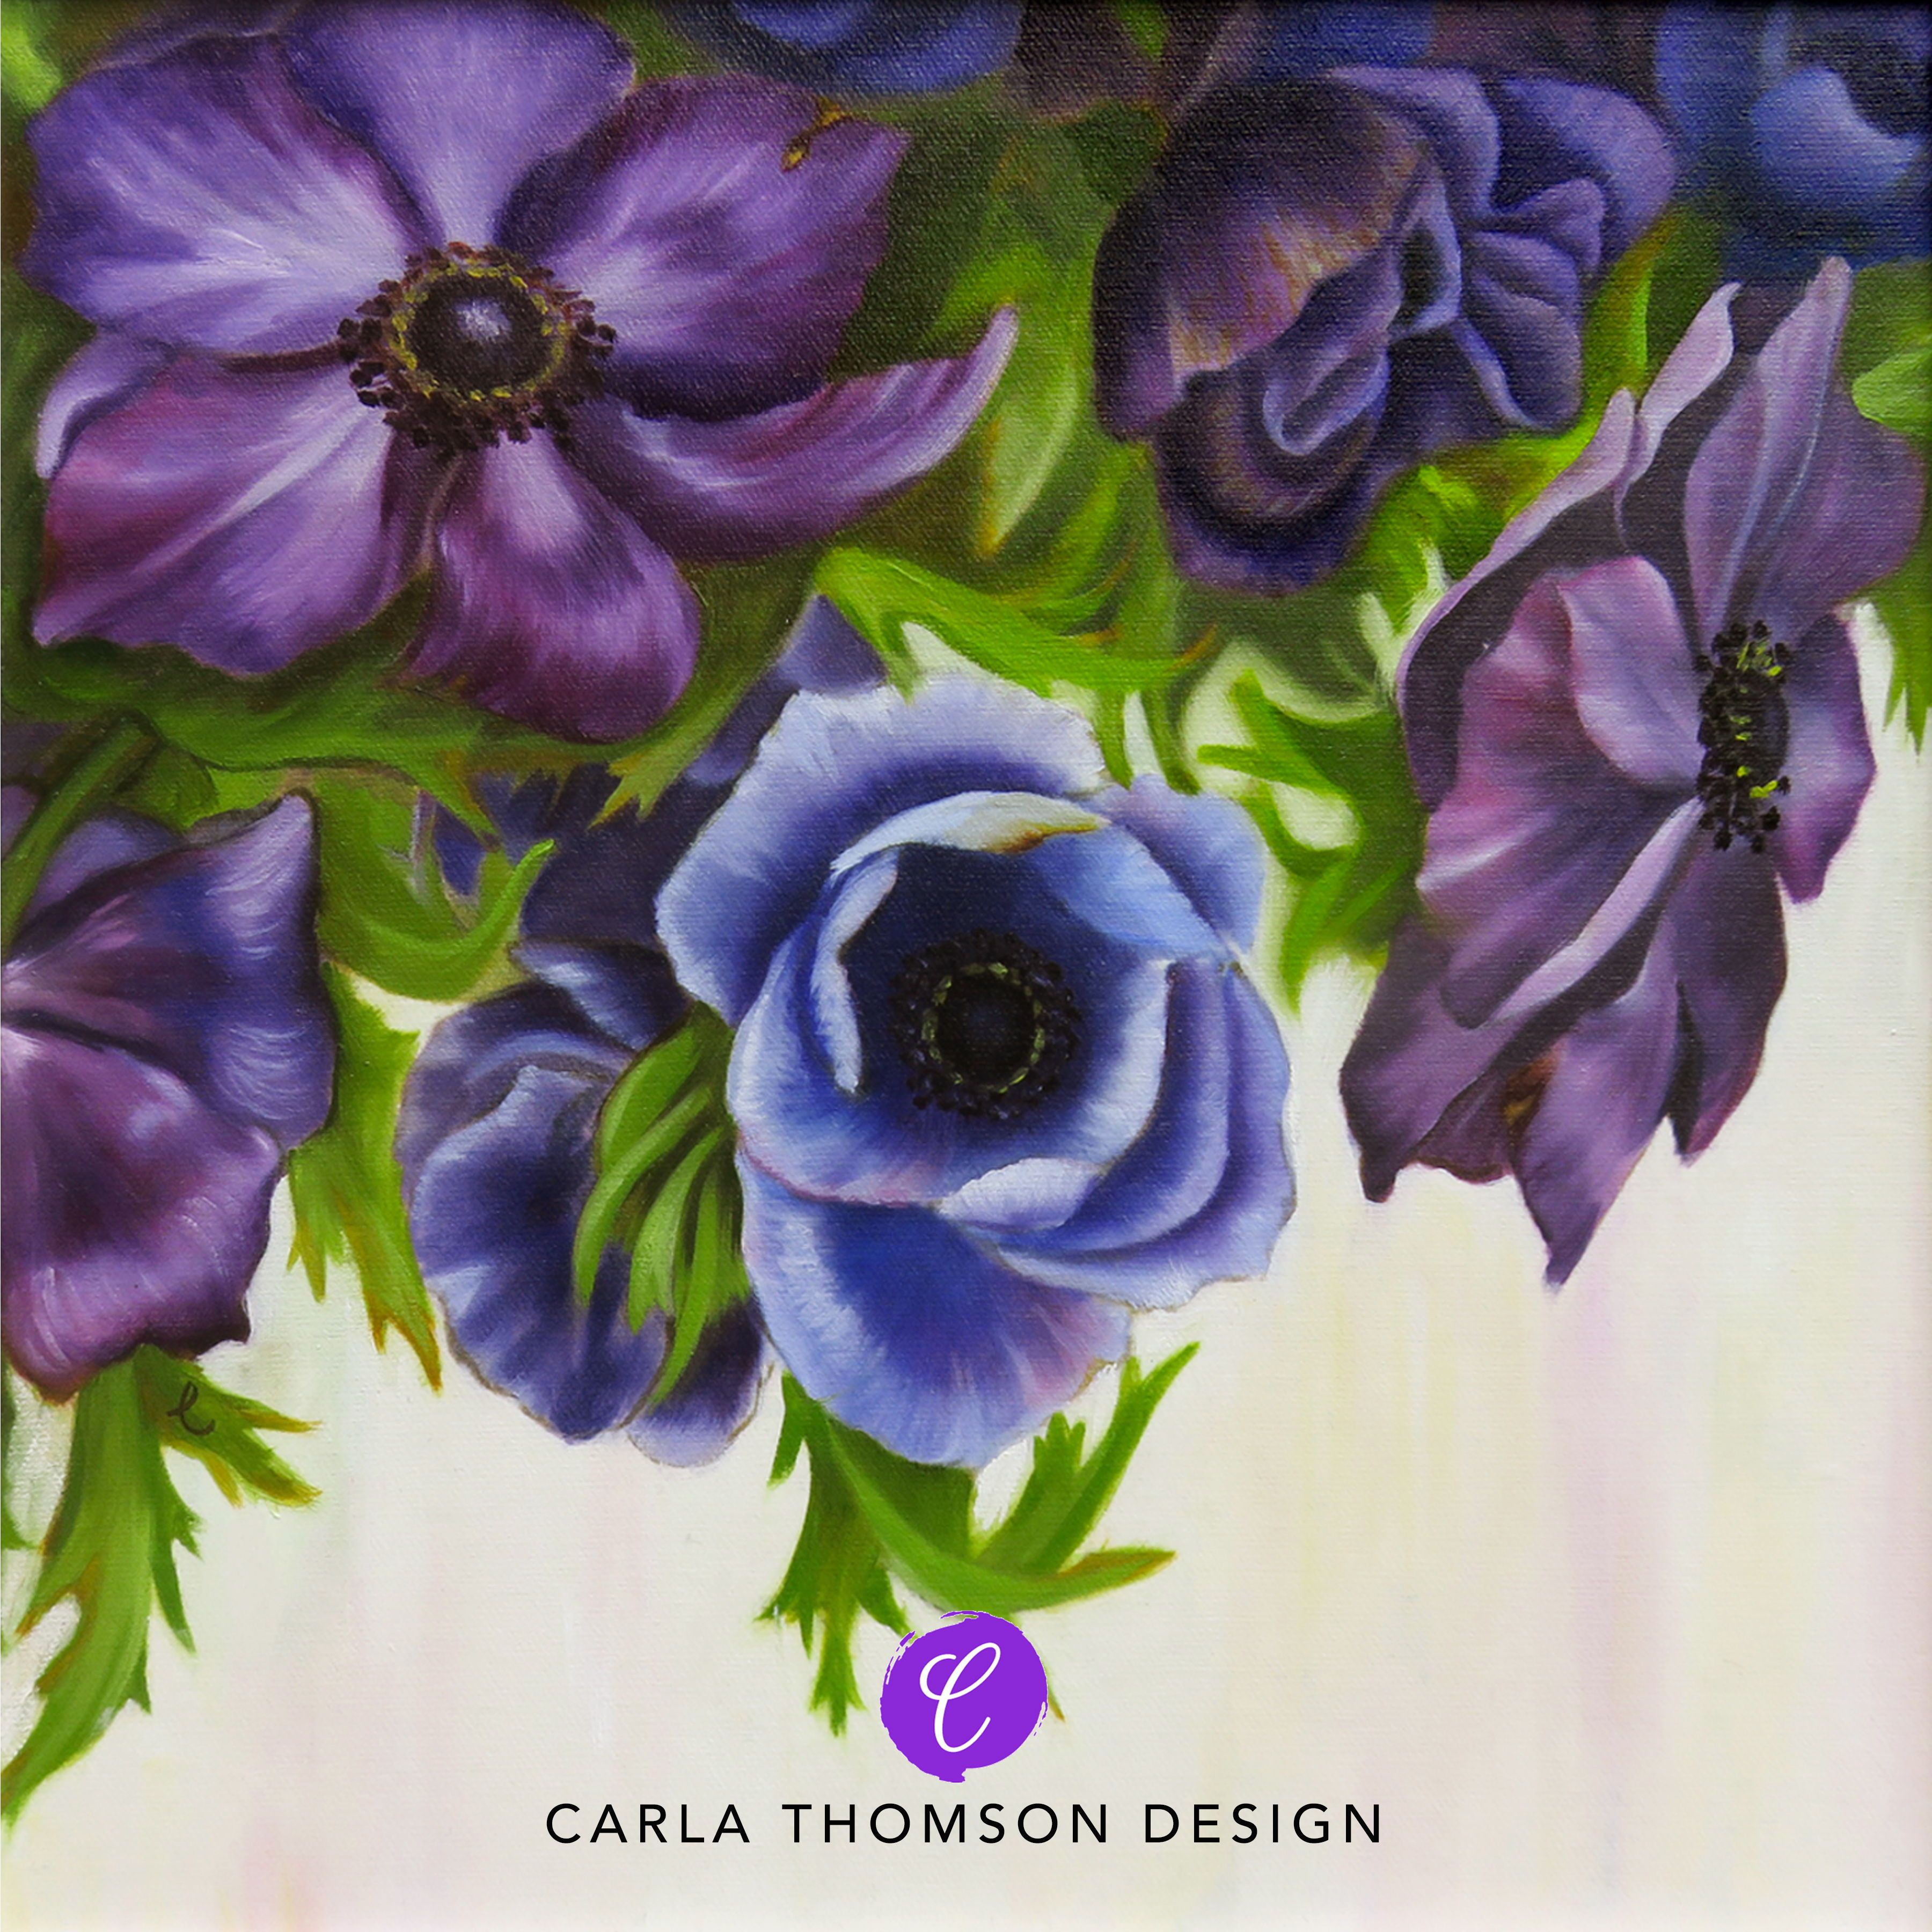 One In A Set Of Two Original Art Oil Painting Anemone Flowers In Blue Purple White And Green On Canvas Framed Wall Floral Painting Flower Painting Floral Art